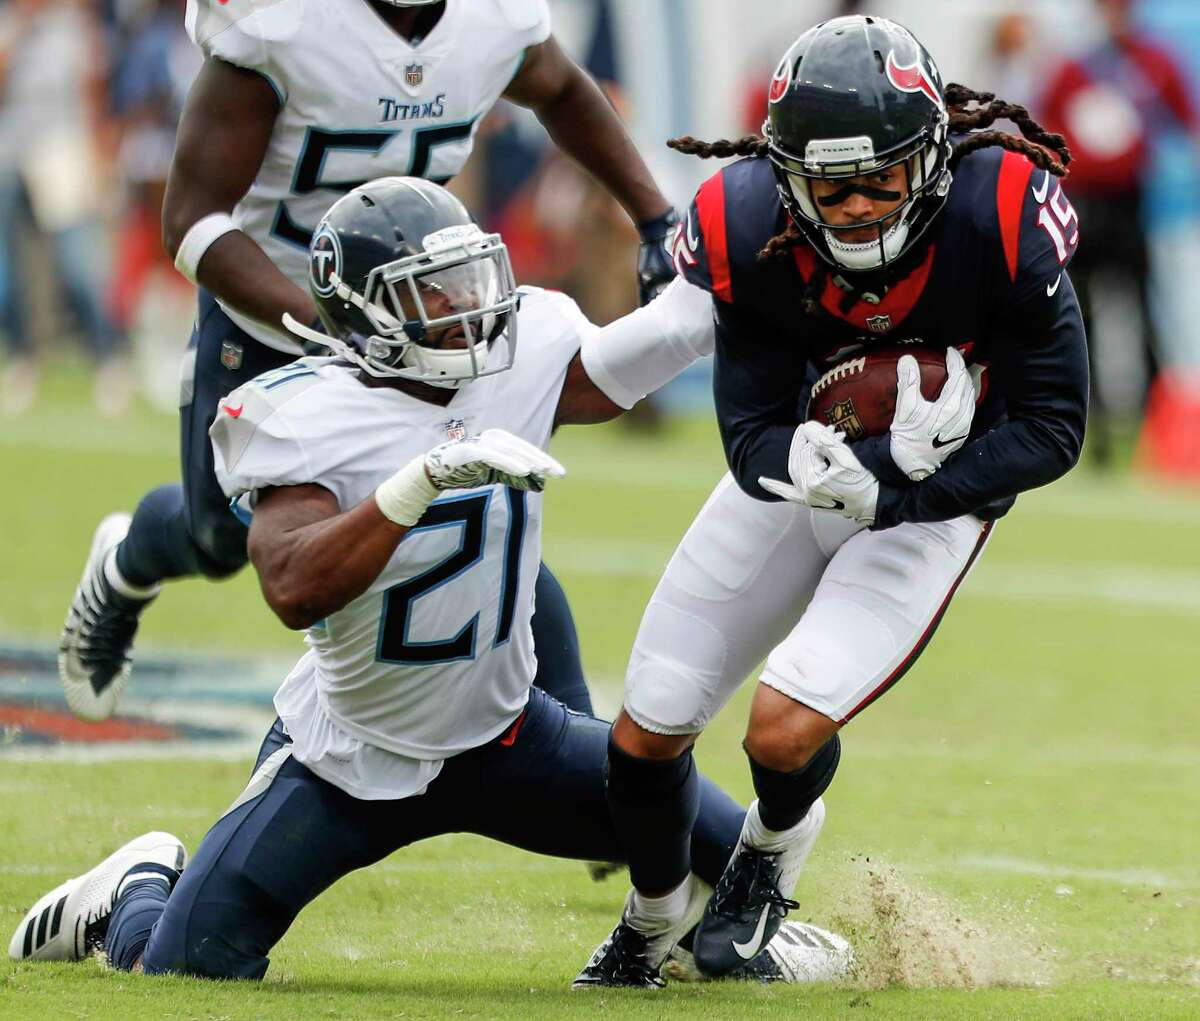 Houston Texans wide receiver Will Fuller (15) makes a catch against Tennessee Titans defensive back Malcolm Butler (21) during the third quarter of an NFL football game at Nissan Stadium on Sunday, Sept. 16, 2018, in Nashville.